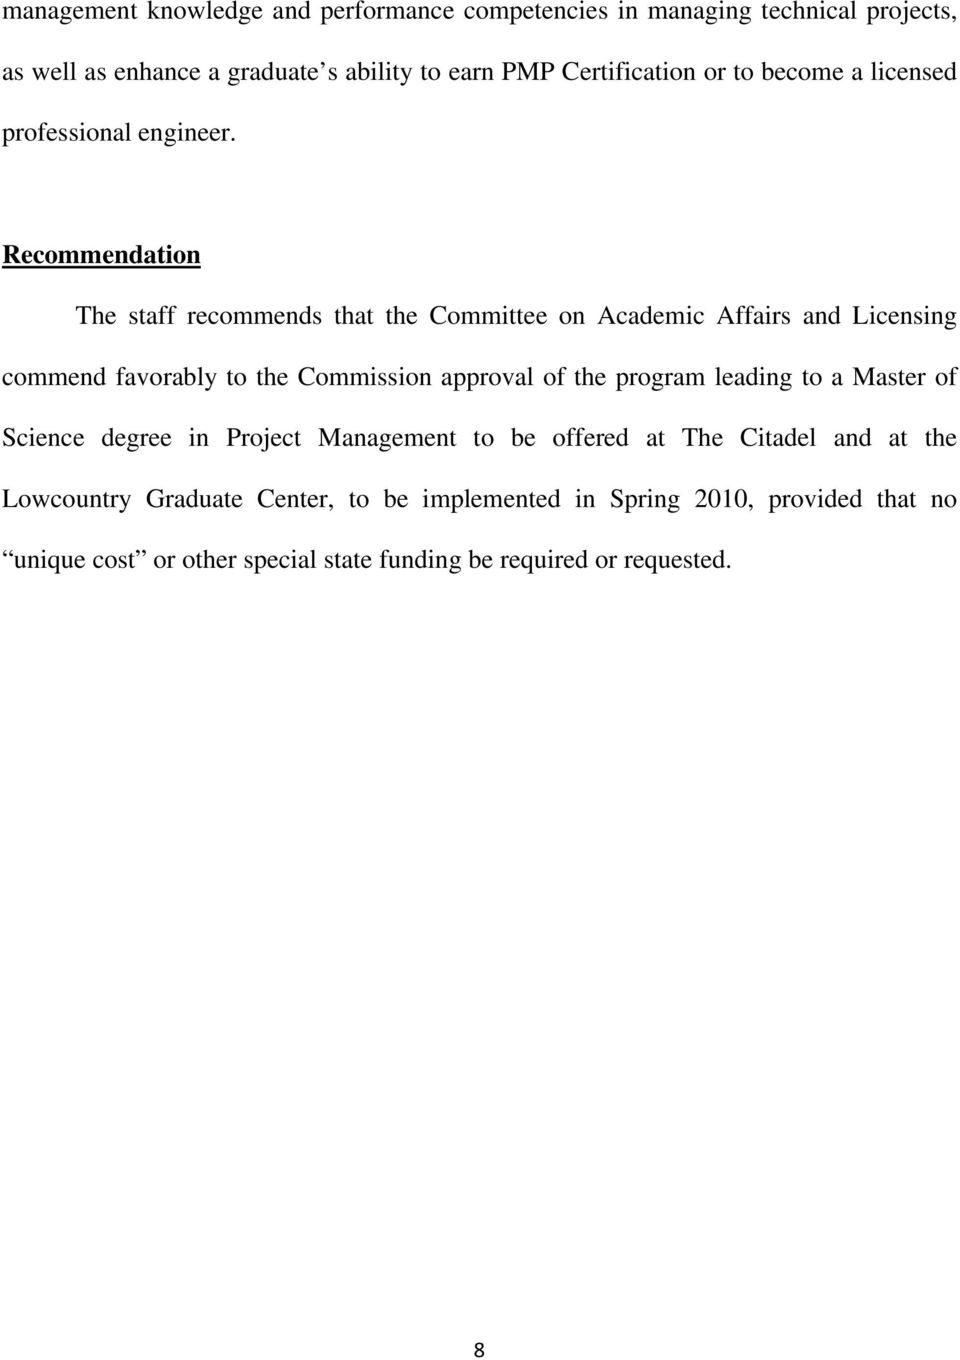 Recommendation The staff recommends that the Committee on Academic Affairs and Licensing commend favorably to the Commission approval of the program